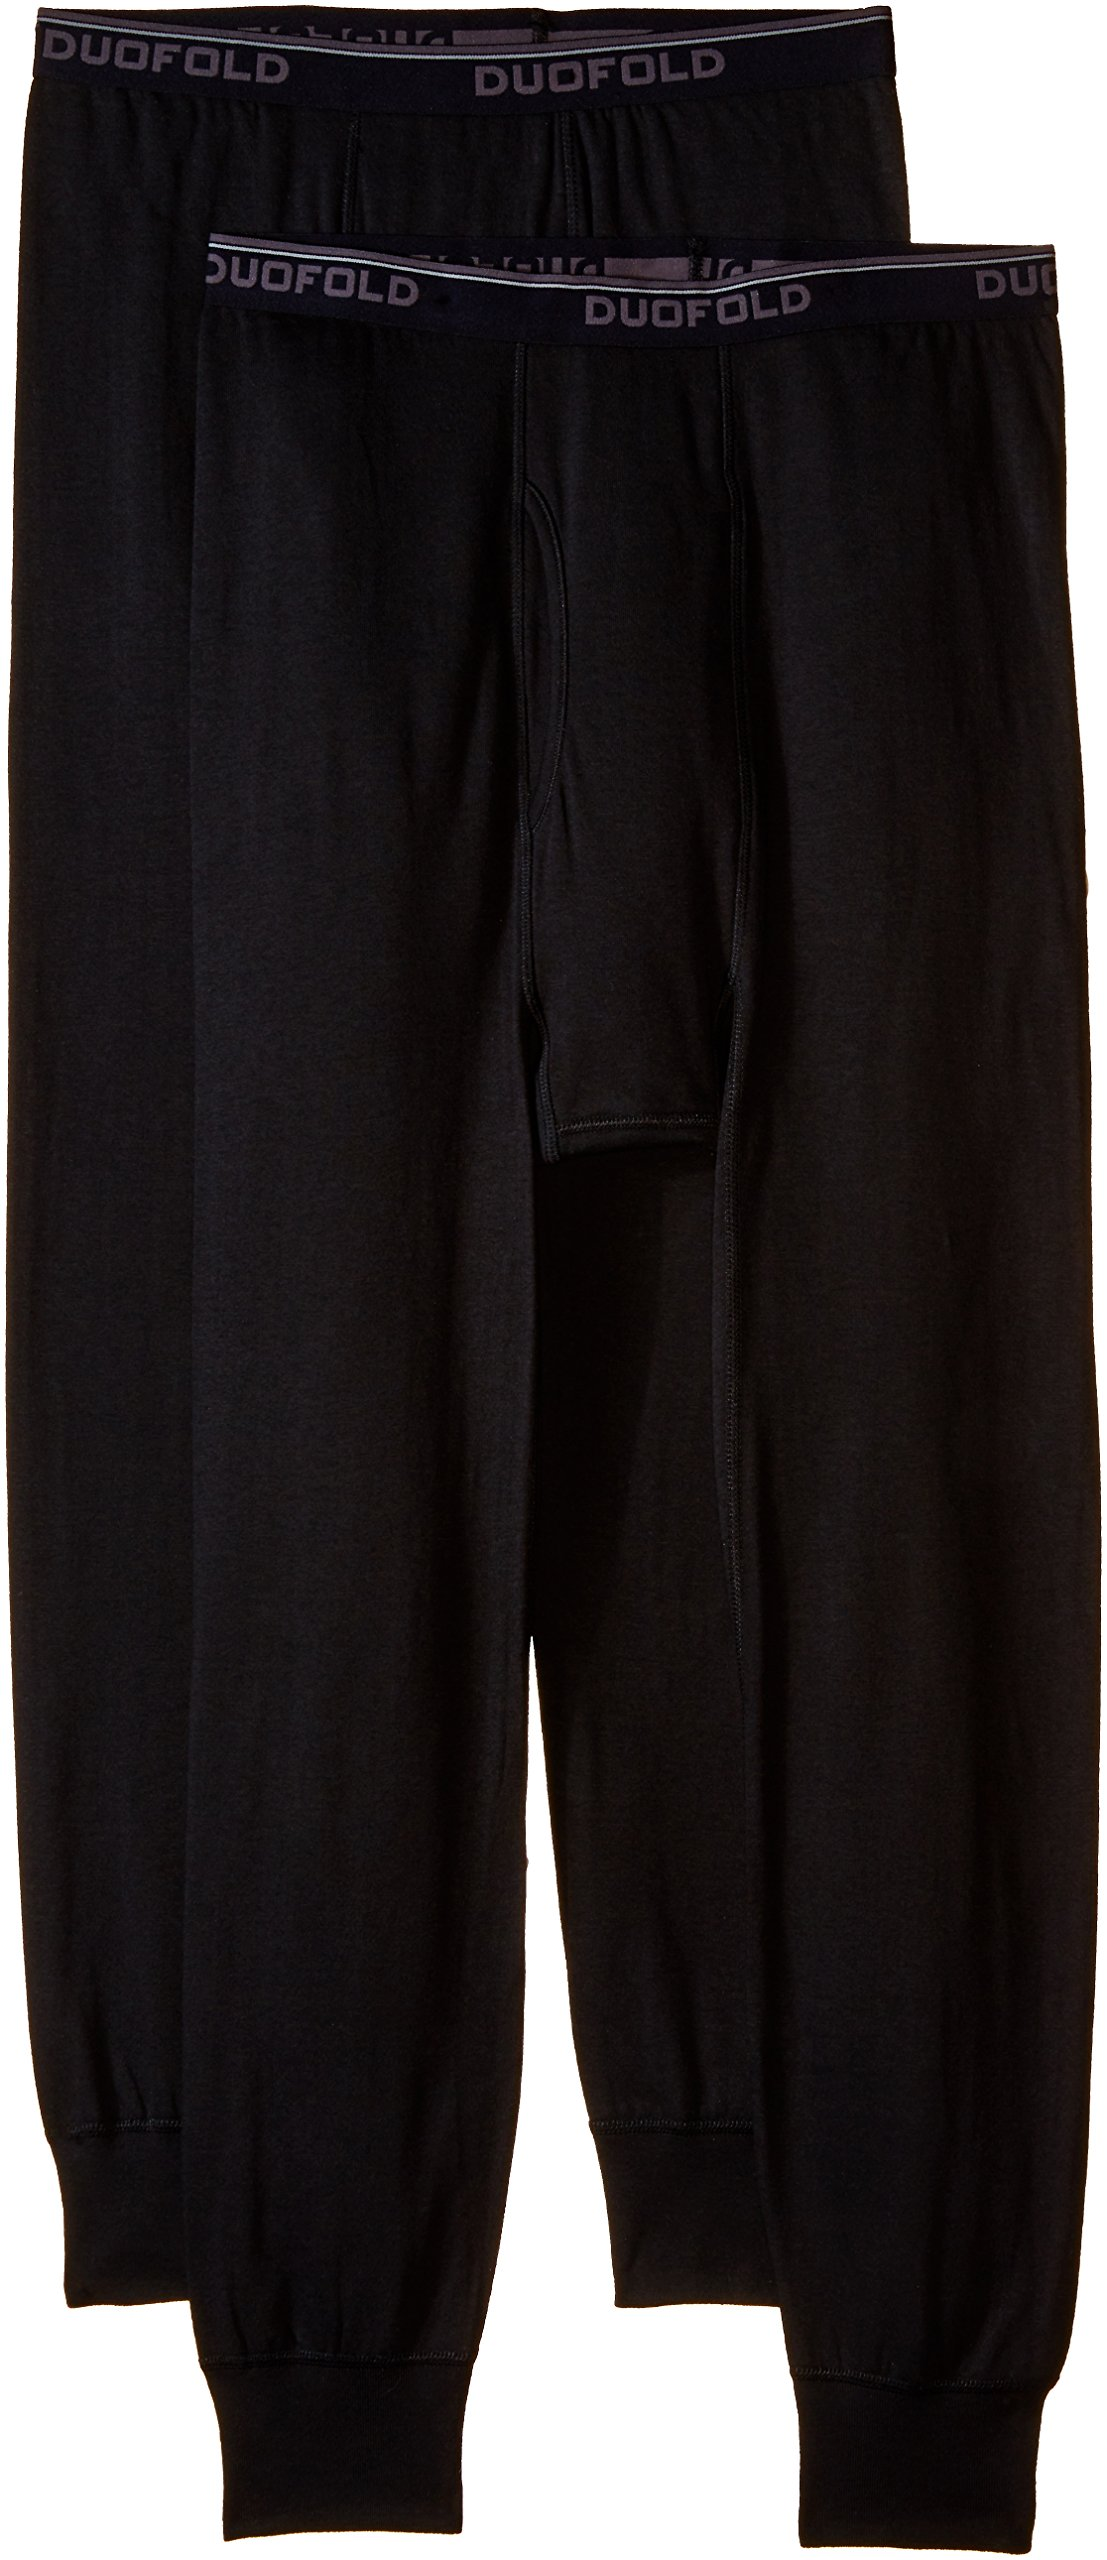 Duofold Men's Mid Weight Wicking Thermal Pant (Pack of 2), Black, X-Large